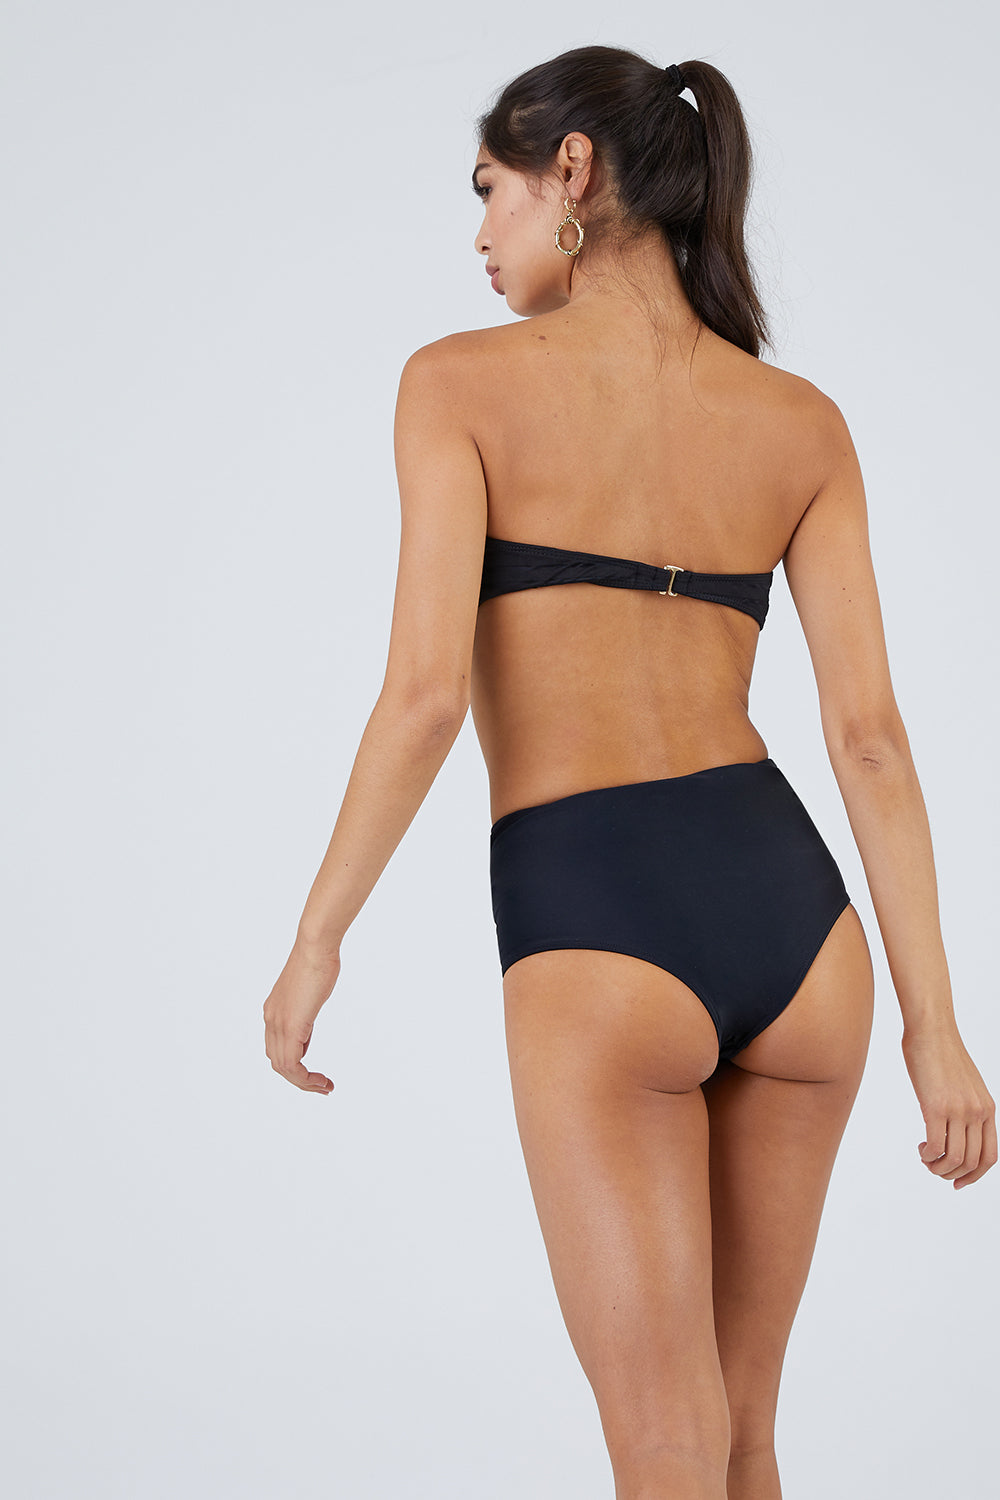 bb0ca4b492 BEACH RIOT Harbor Criss Cross Cut Outs Bikini Bottom - Sassy Black -  undefined undefined ...